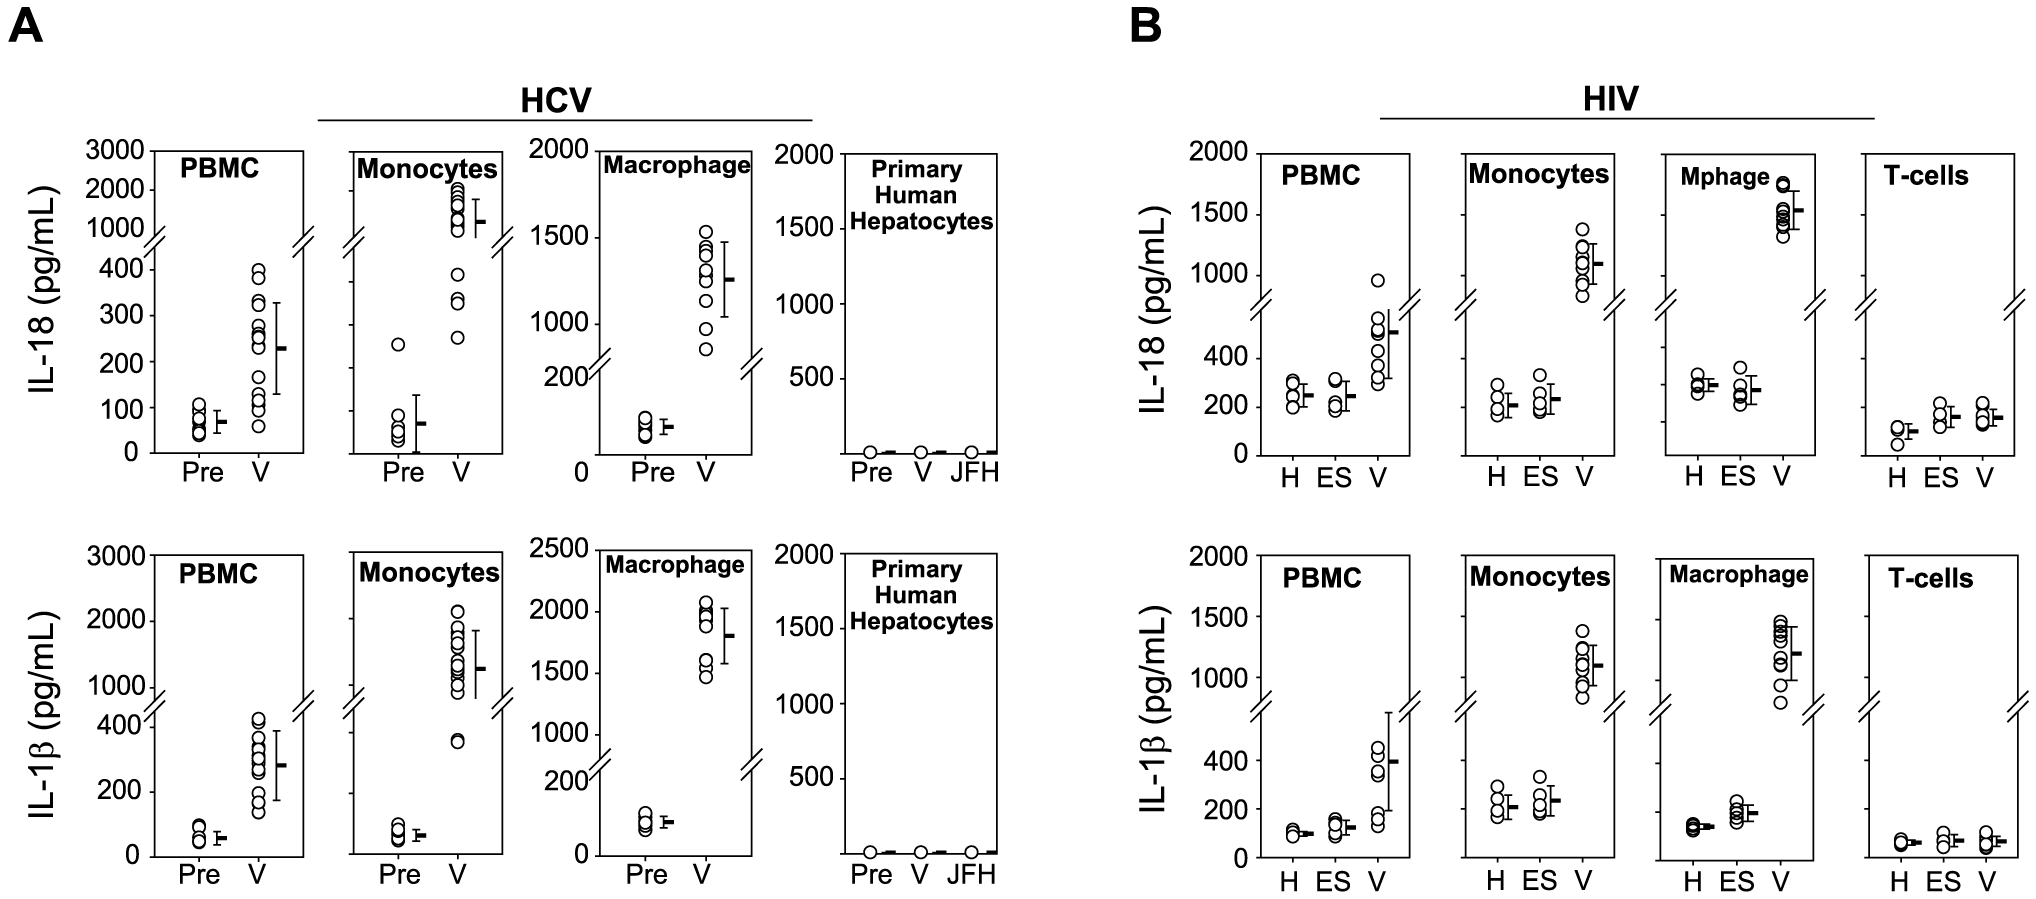 Monocytes produce inflammasome cytokines in response to HCV and HIV.